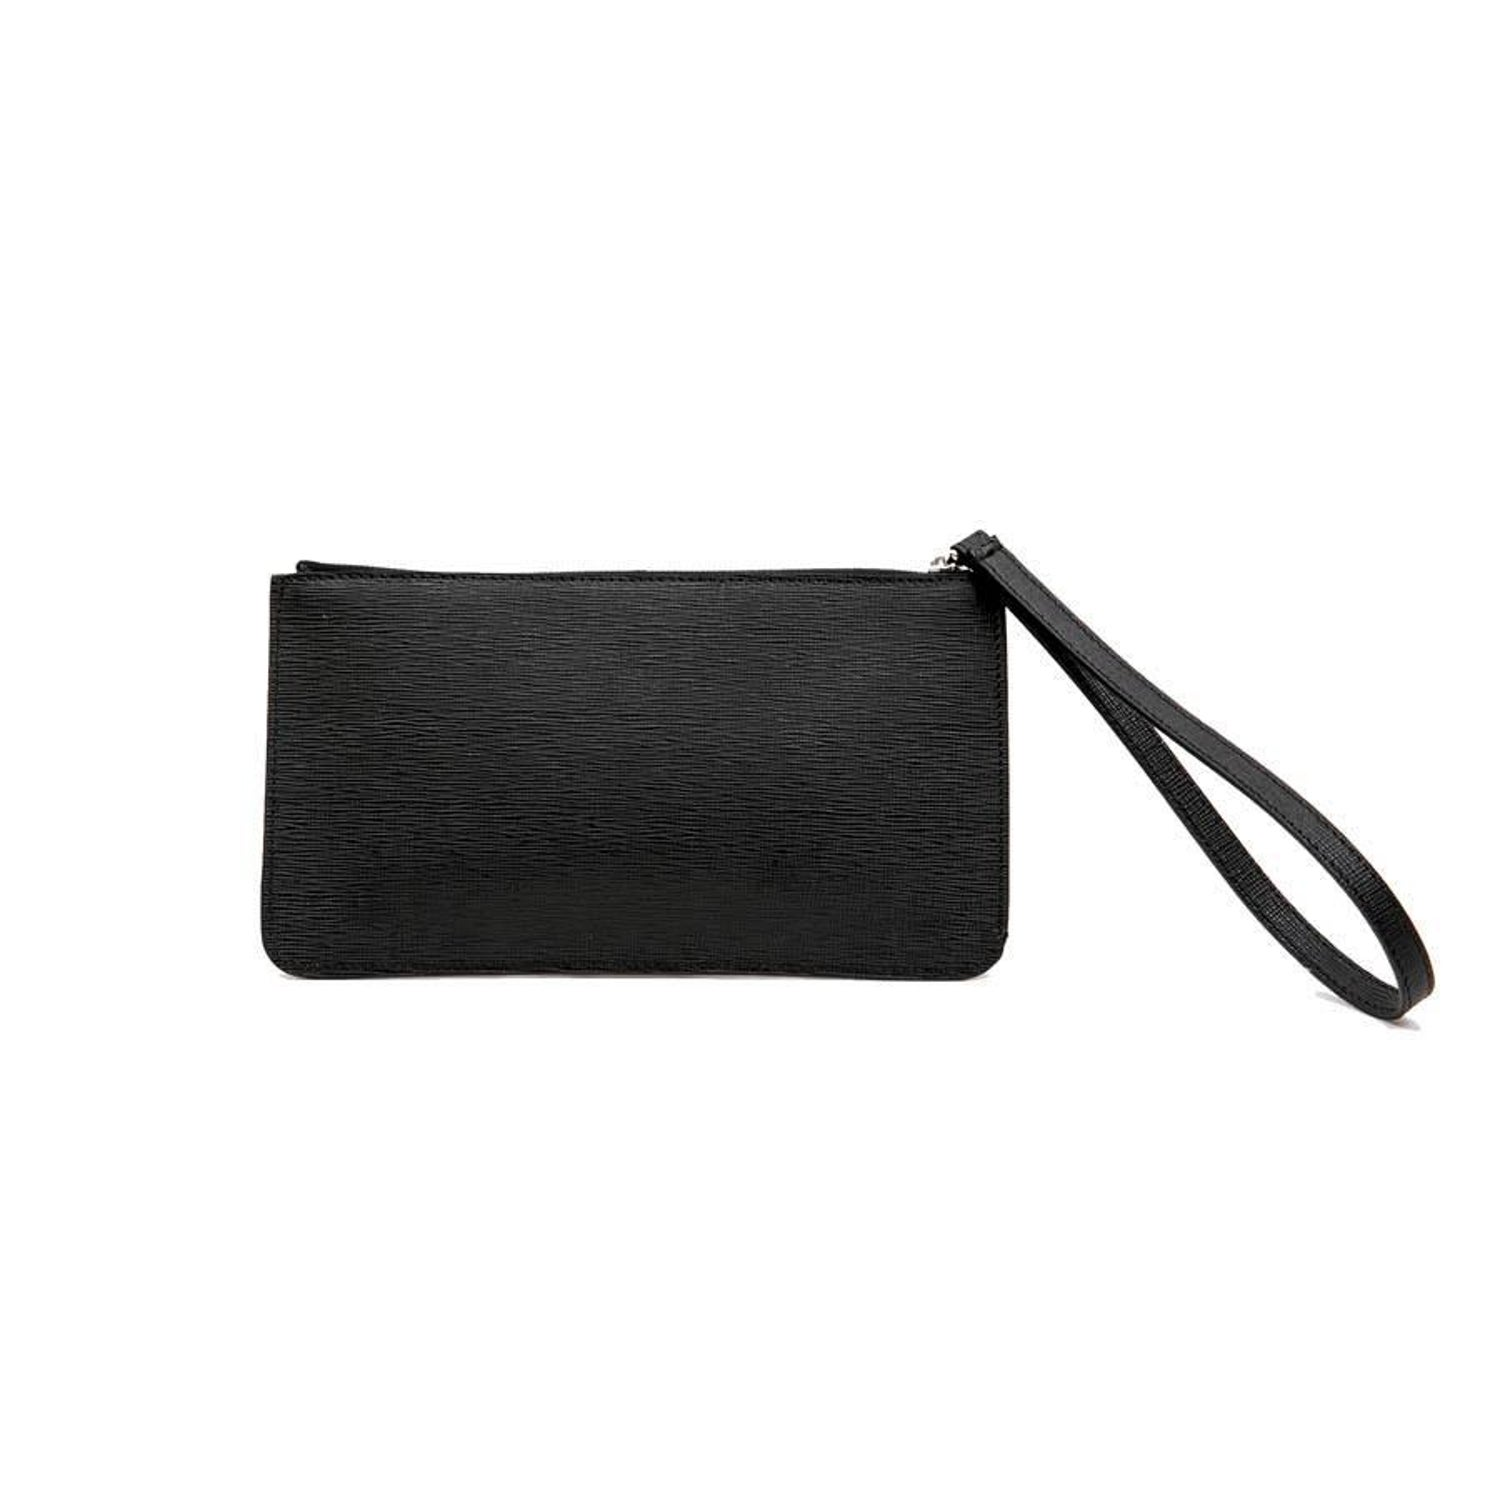 e6f12fbccc9d FENDI  Karlito  by Karl Lagerfeld Clutch in Black Studded Leather at 1stdibs